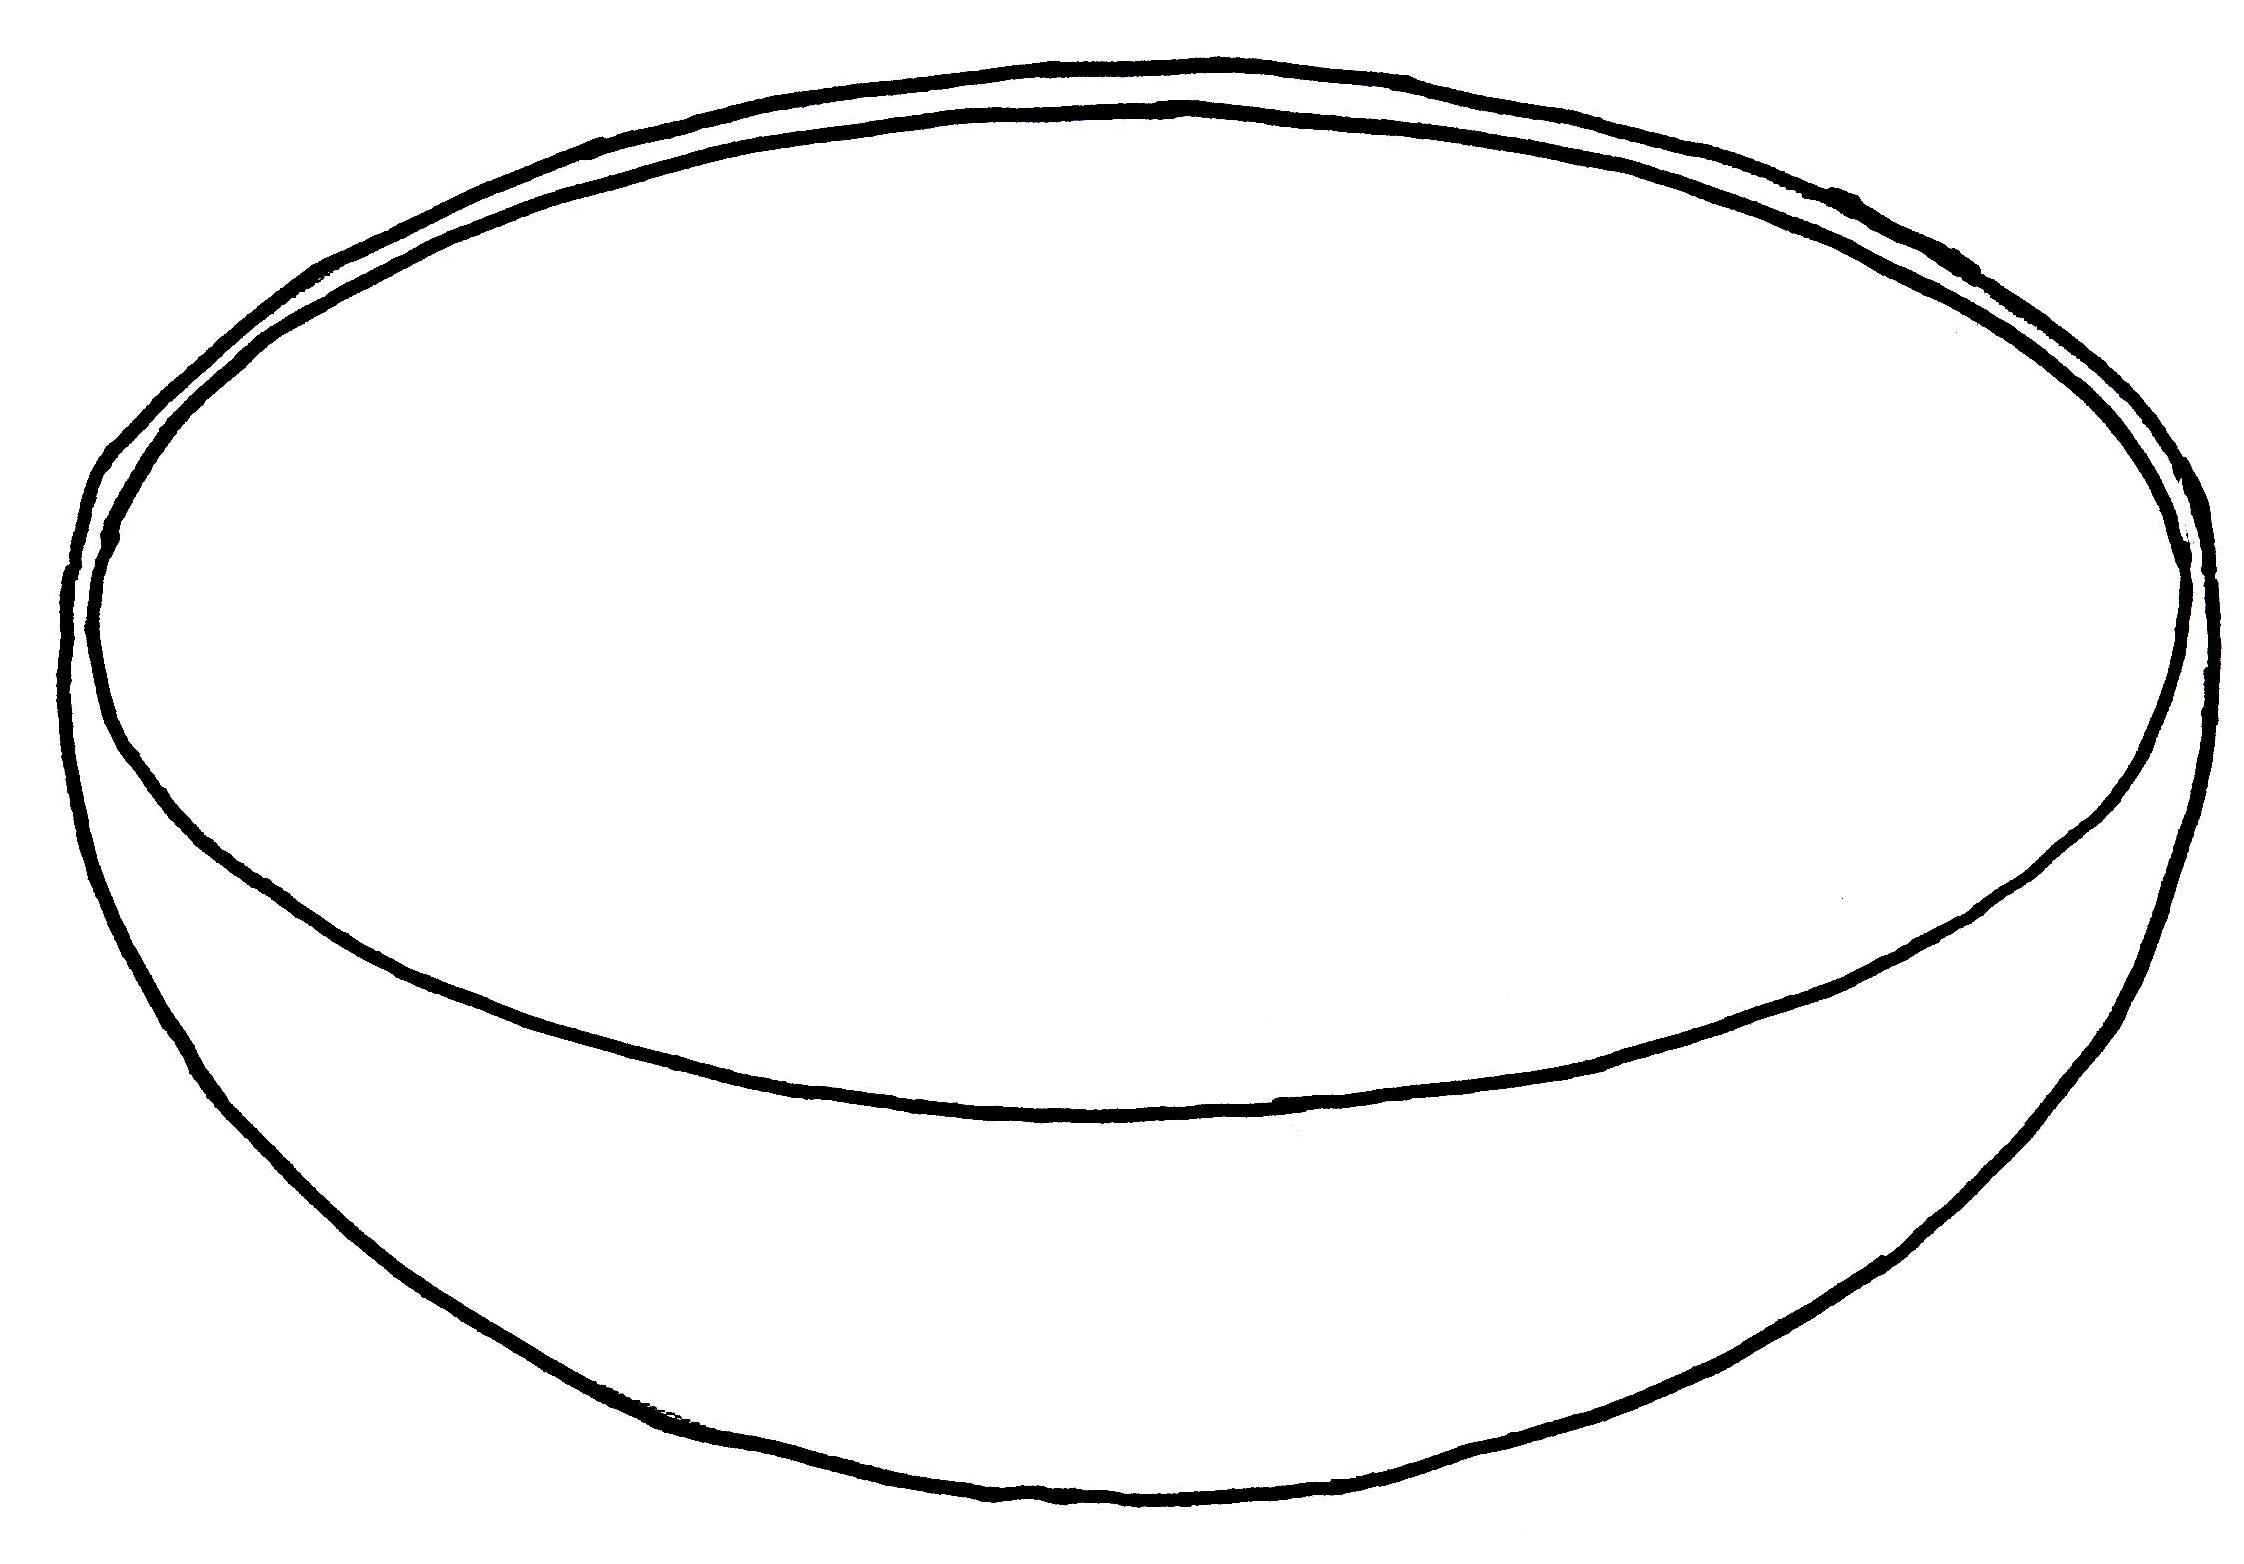 fruit bowl coloring page craftsactvities and worksheets for preschooltoddler and bowl coloring fruit page